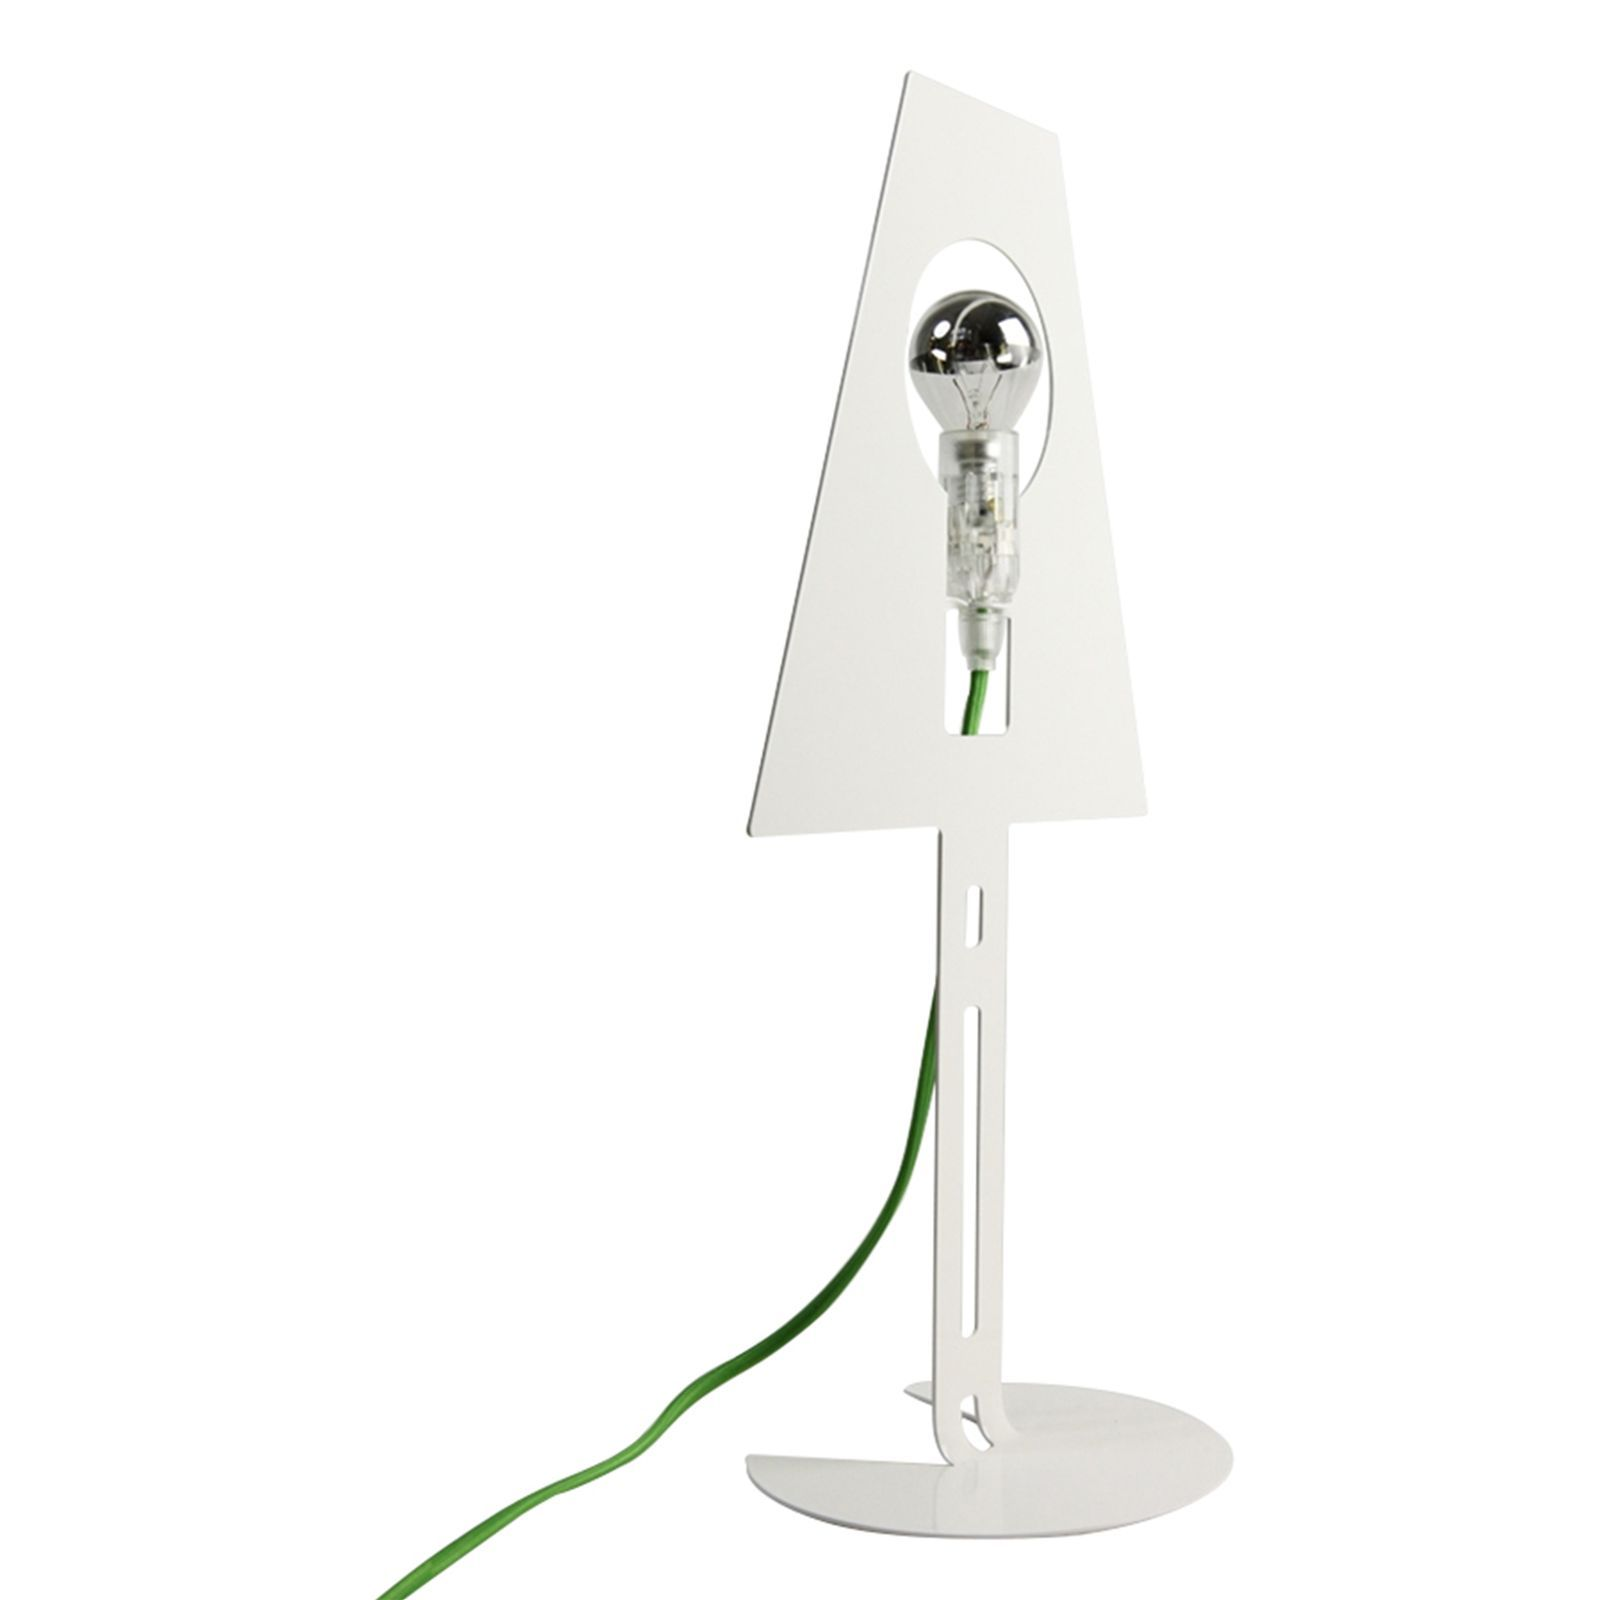 fenel et arno 2d 2plis lampe design blanche fil vert blanc brandalley. Black Bedroom Furniture Sets. Home Design Ideas